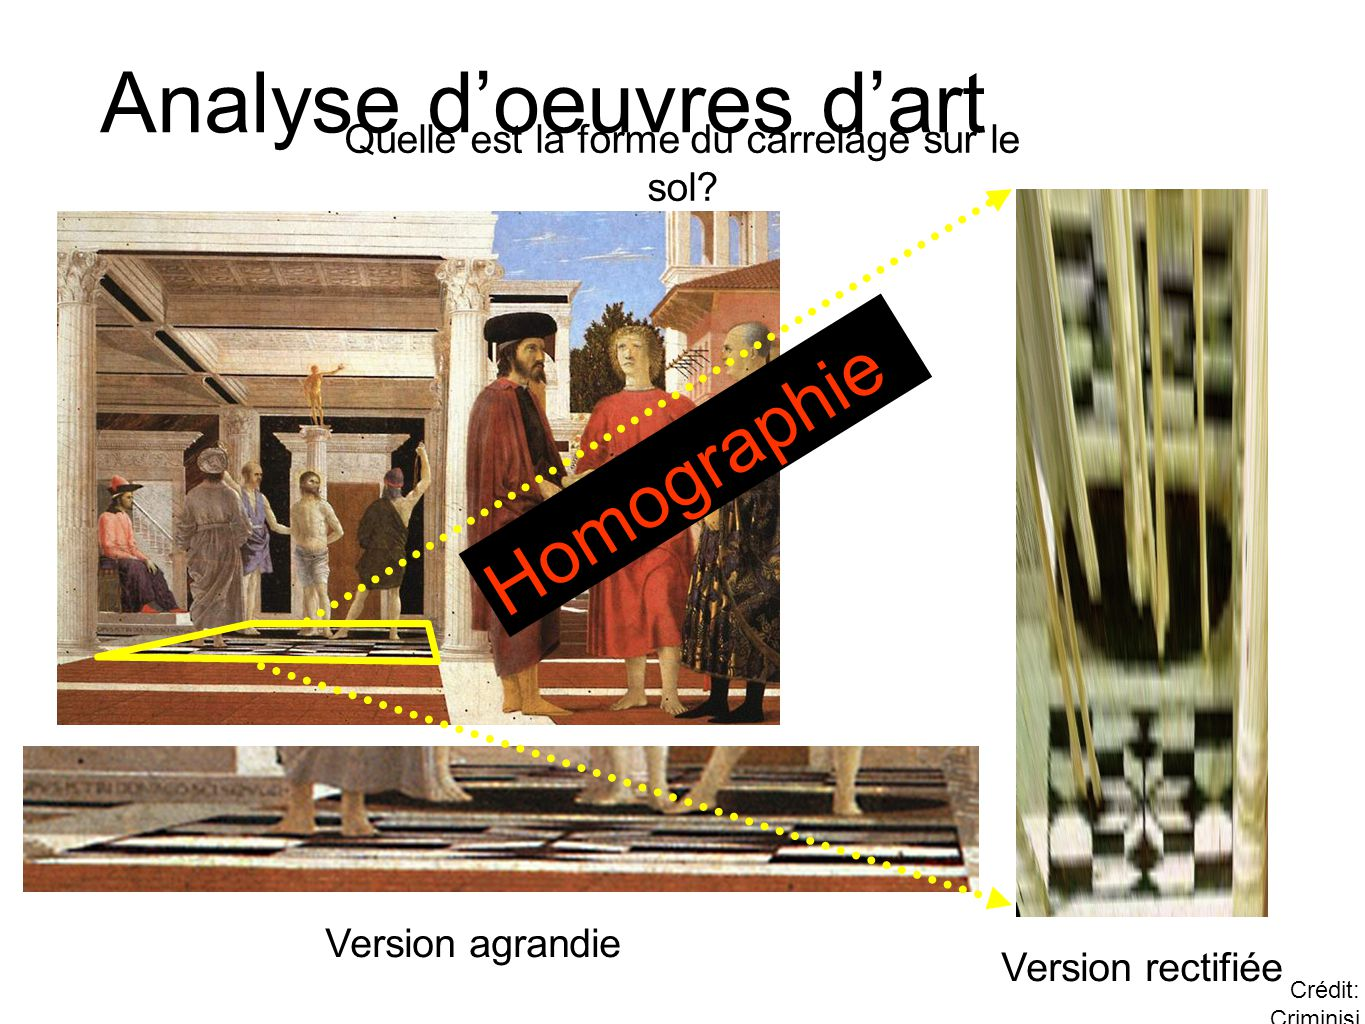 Analyse d'oeuvres d'art